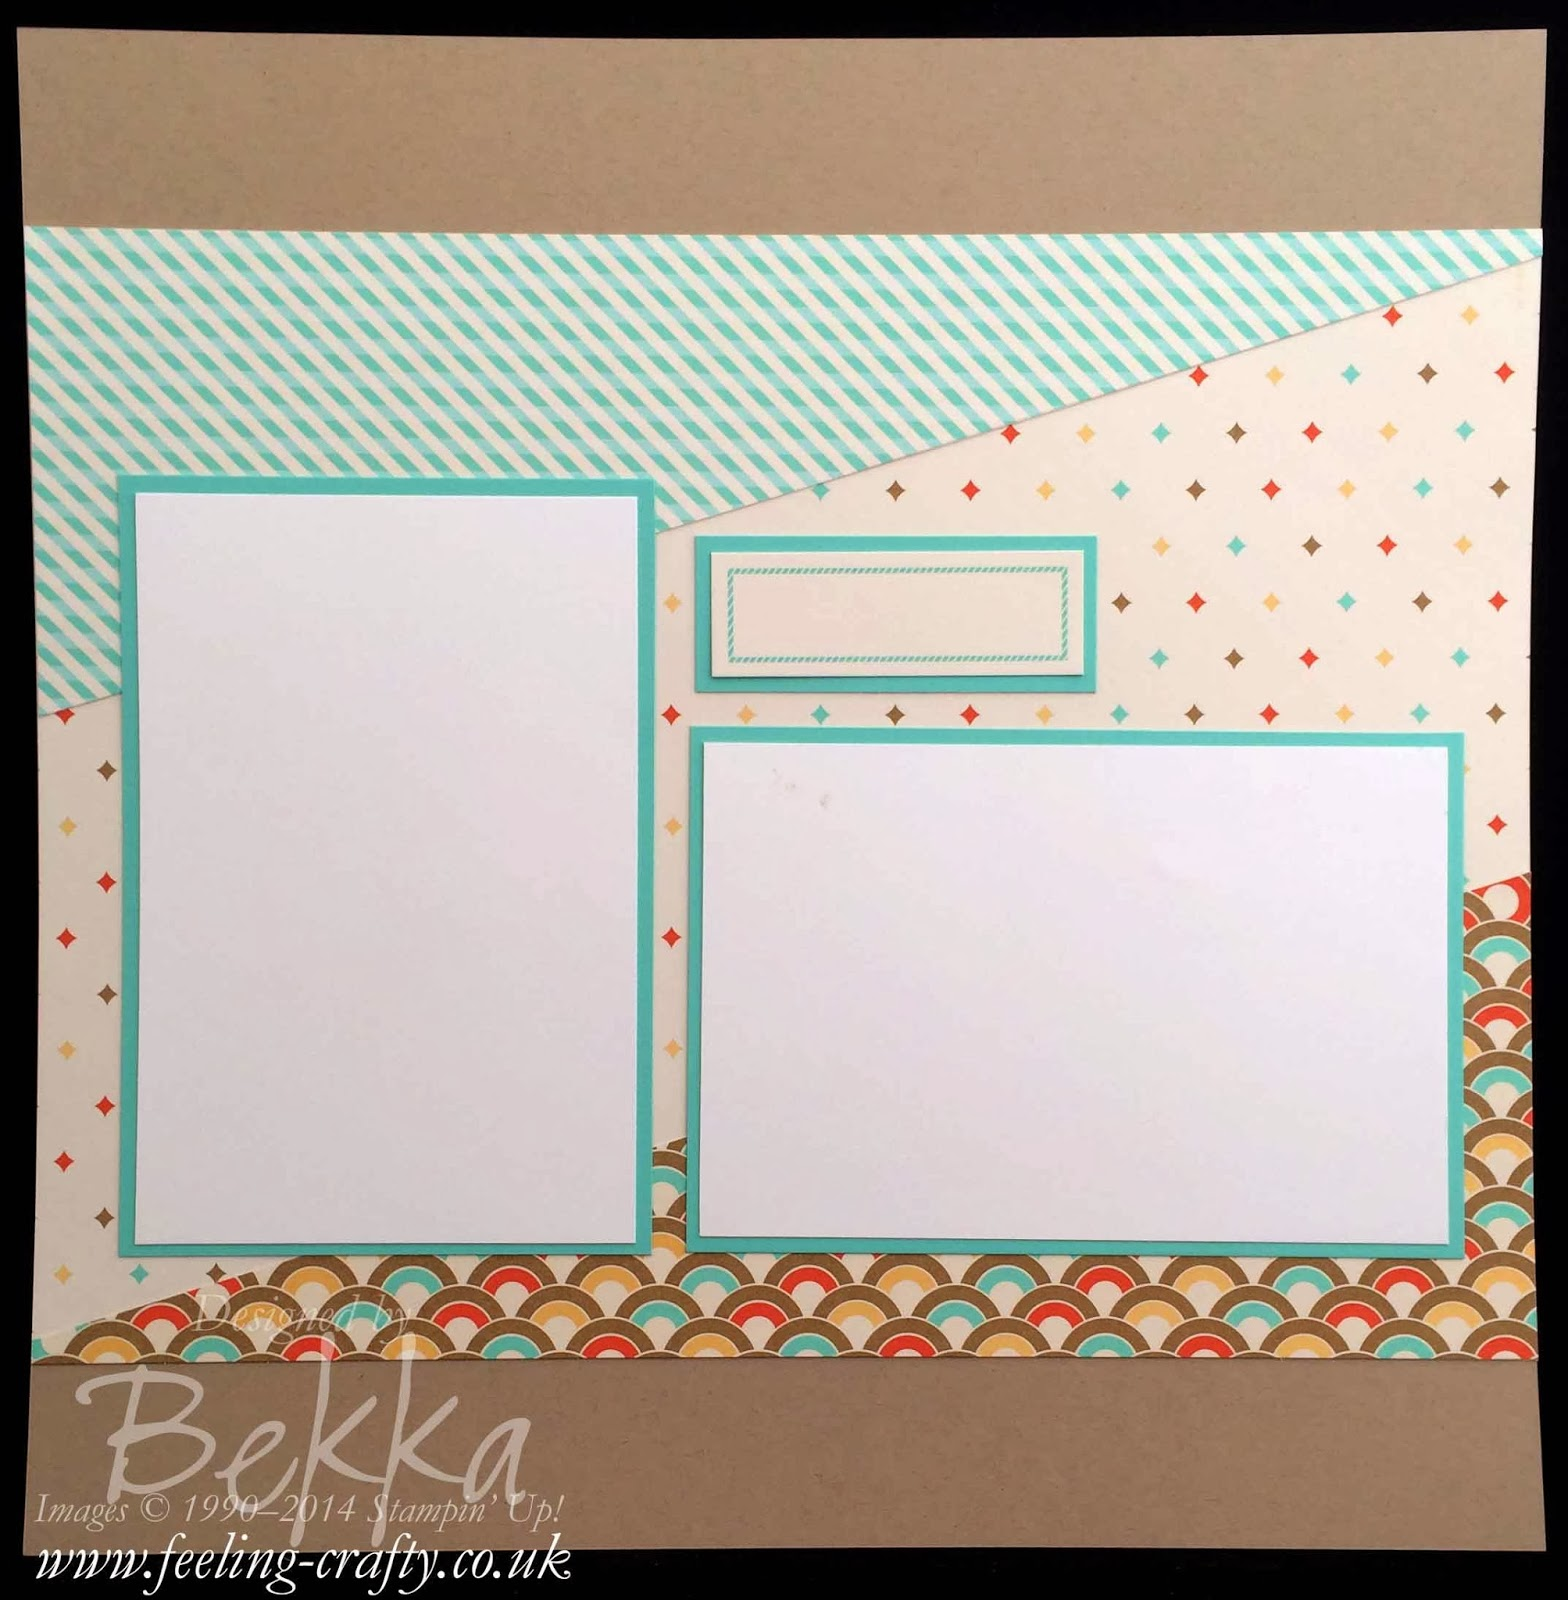 Retro Fresh scrpabook Start Point by UK based Stampin' Up! Demonstrator Bekka Prideaux - she used this to set a team challenge!